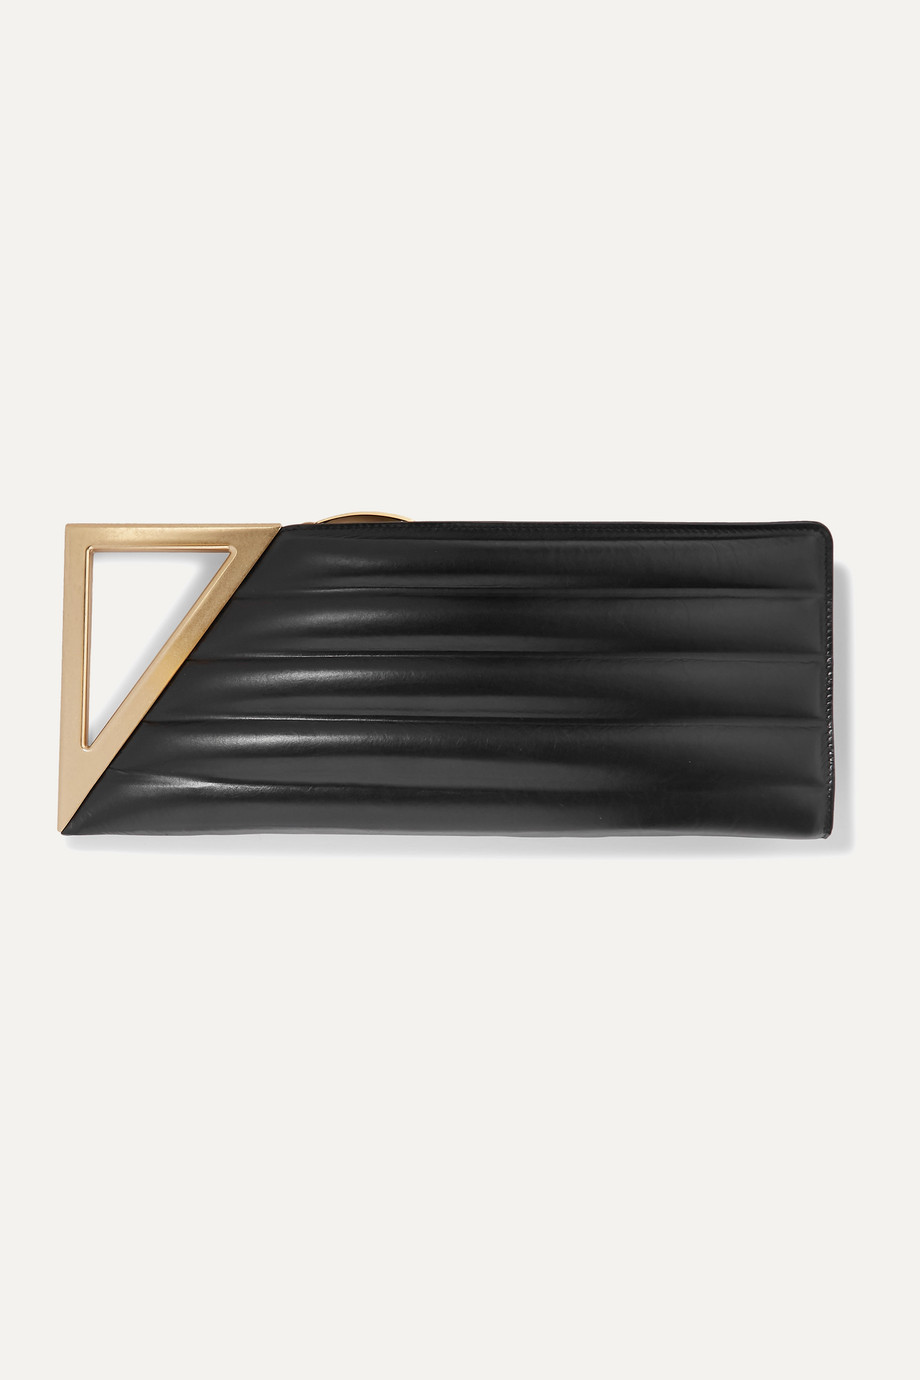 Bottega Veneta BV Rim quilted leather clutch